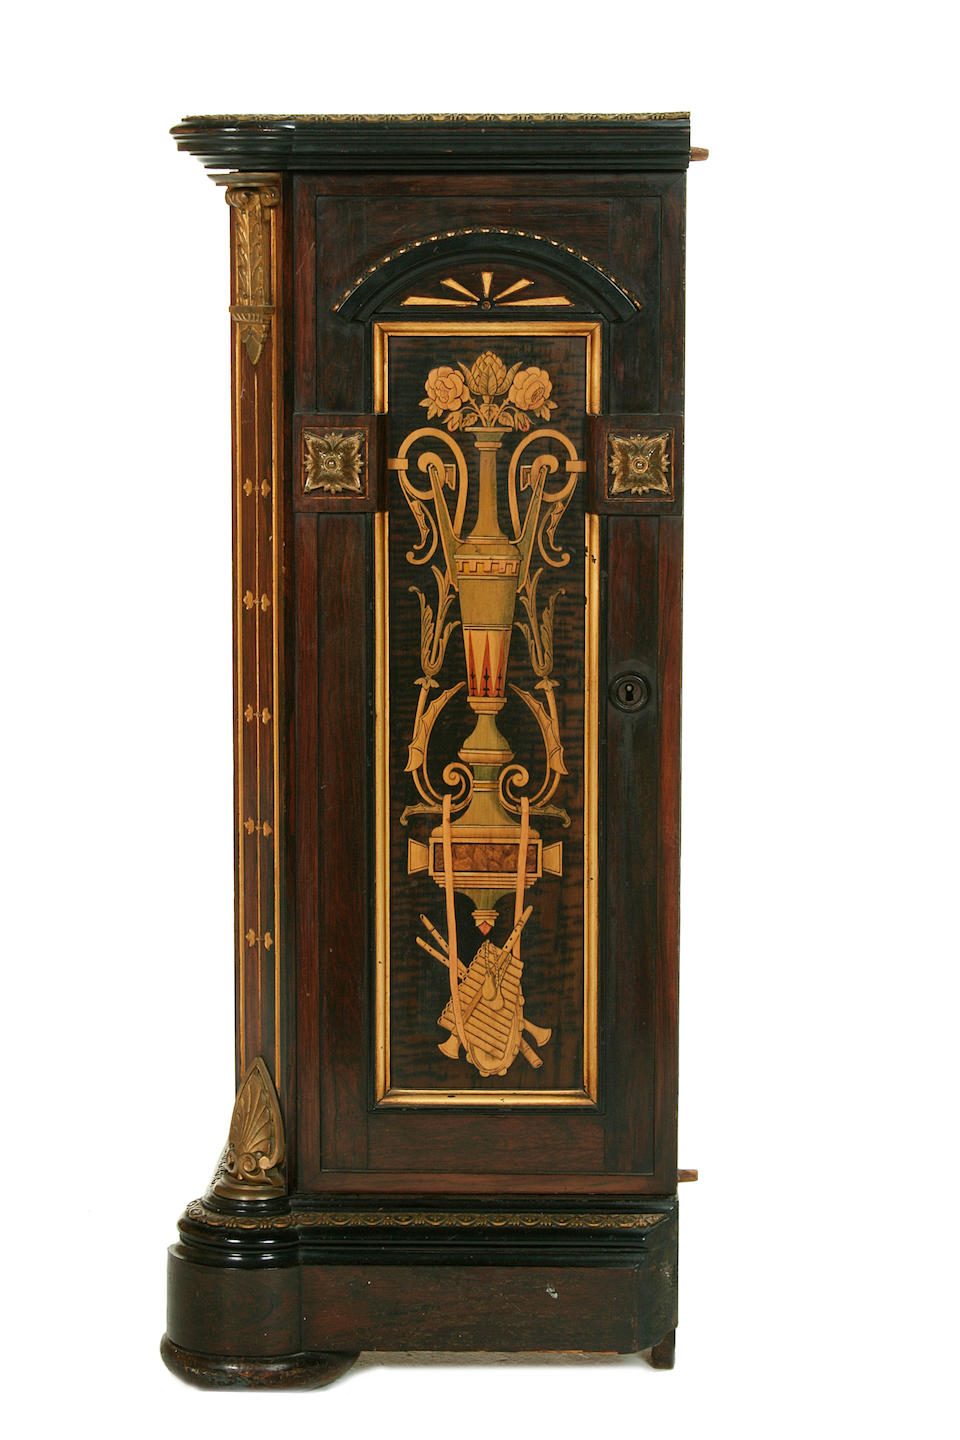 An important American late 19th century ormolu and porcelain-mounted, parcel-gilt, rosewood, tulipwood, sycamore, ebony, ebonised and marquetry upright piano by Steinway and Sons, index number 32260, New York, the cabinet work by E.W. Hutchings and Son, the painted porcelain plaques by A. Deligny, circa 1875